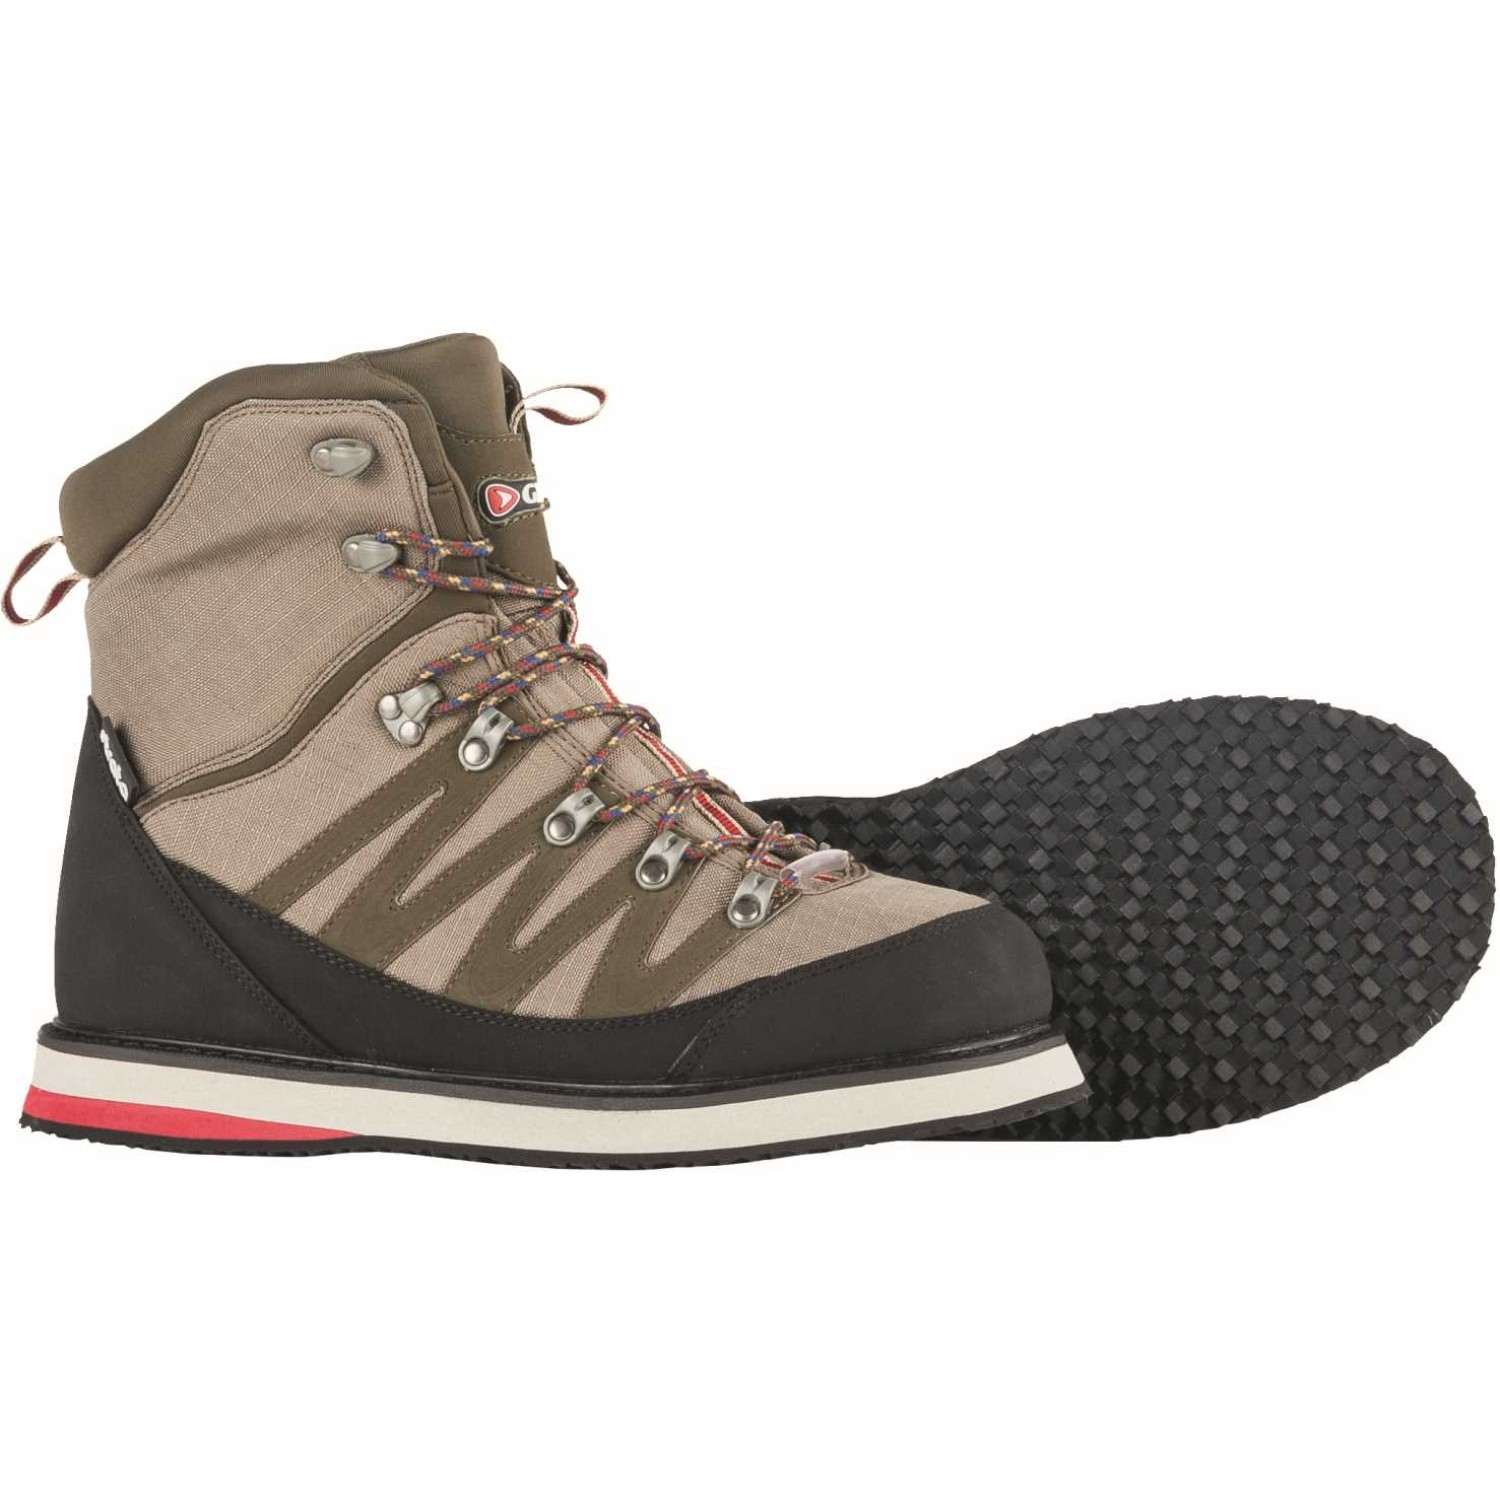 Greys Strata CT Wading Boots Rubber